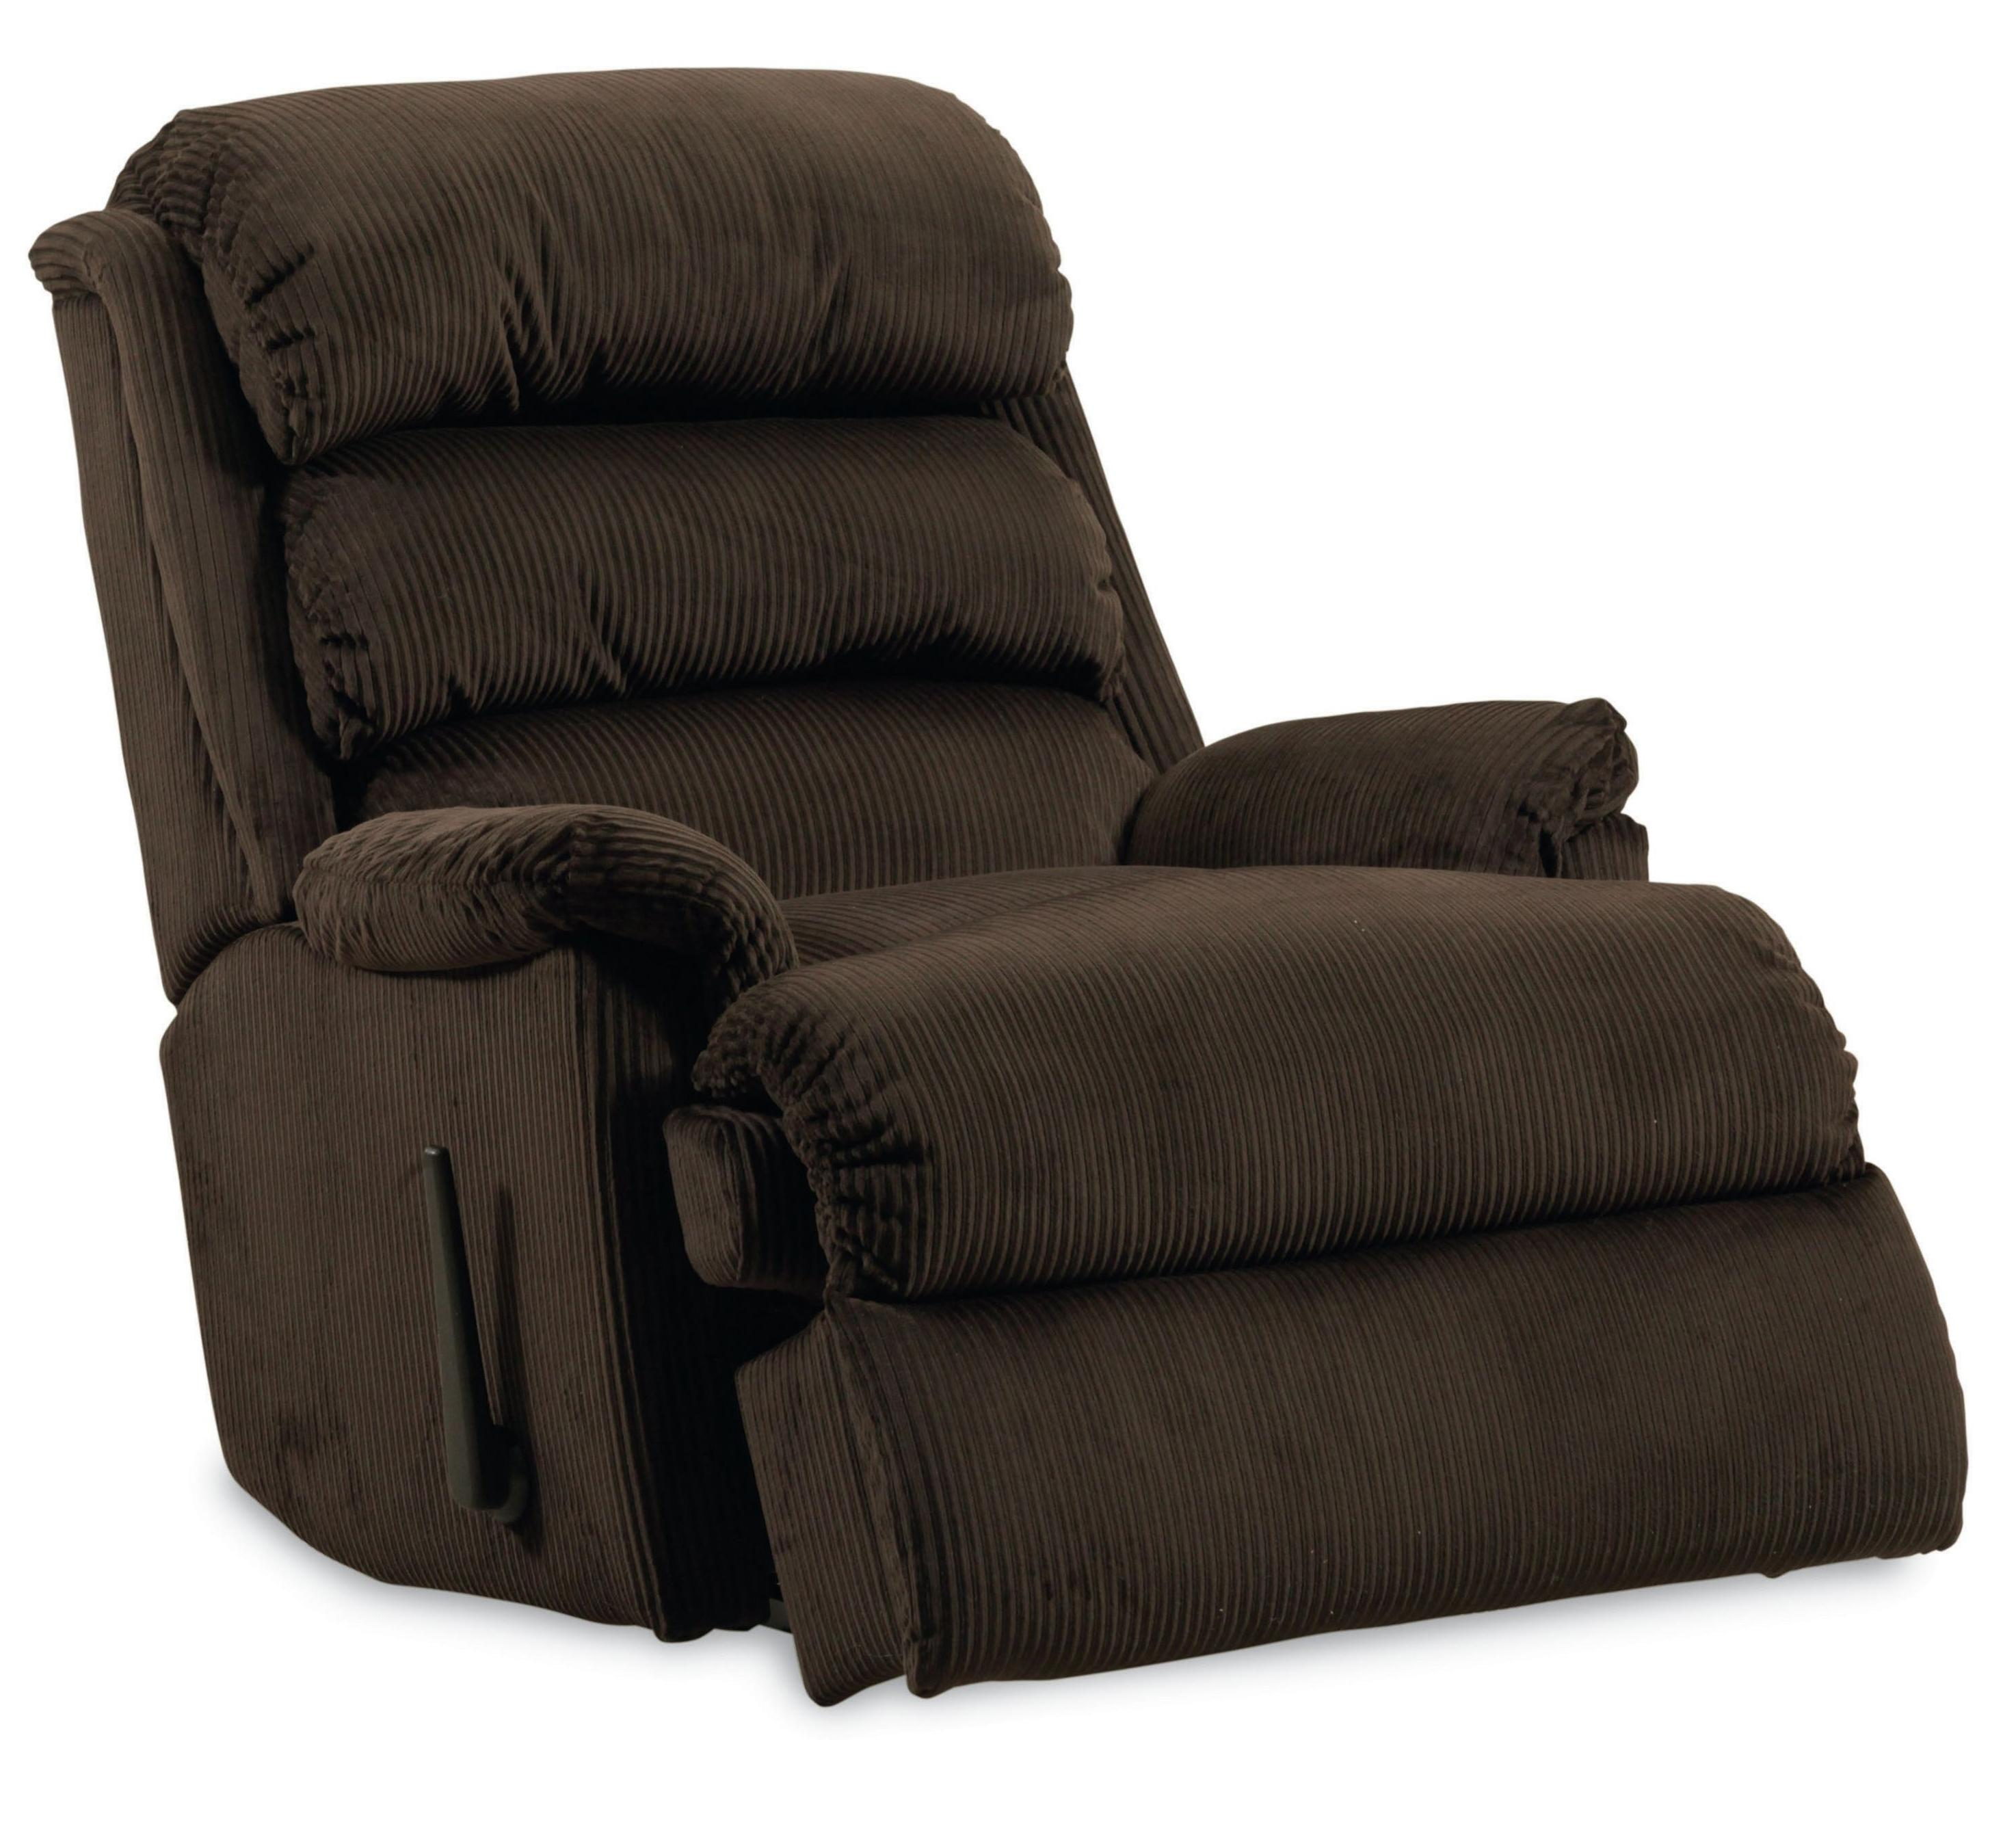 Lane revive 11958 casual pad over chaise rocker recliner for Bulldog pad over chaise rocker recliner